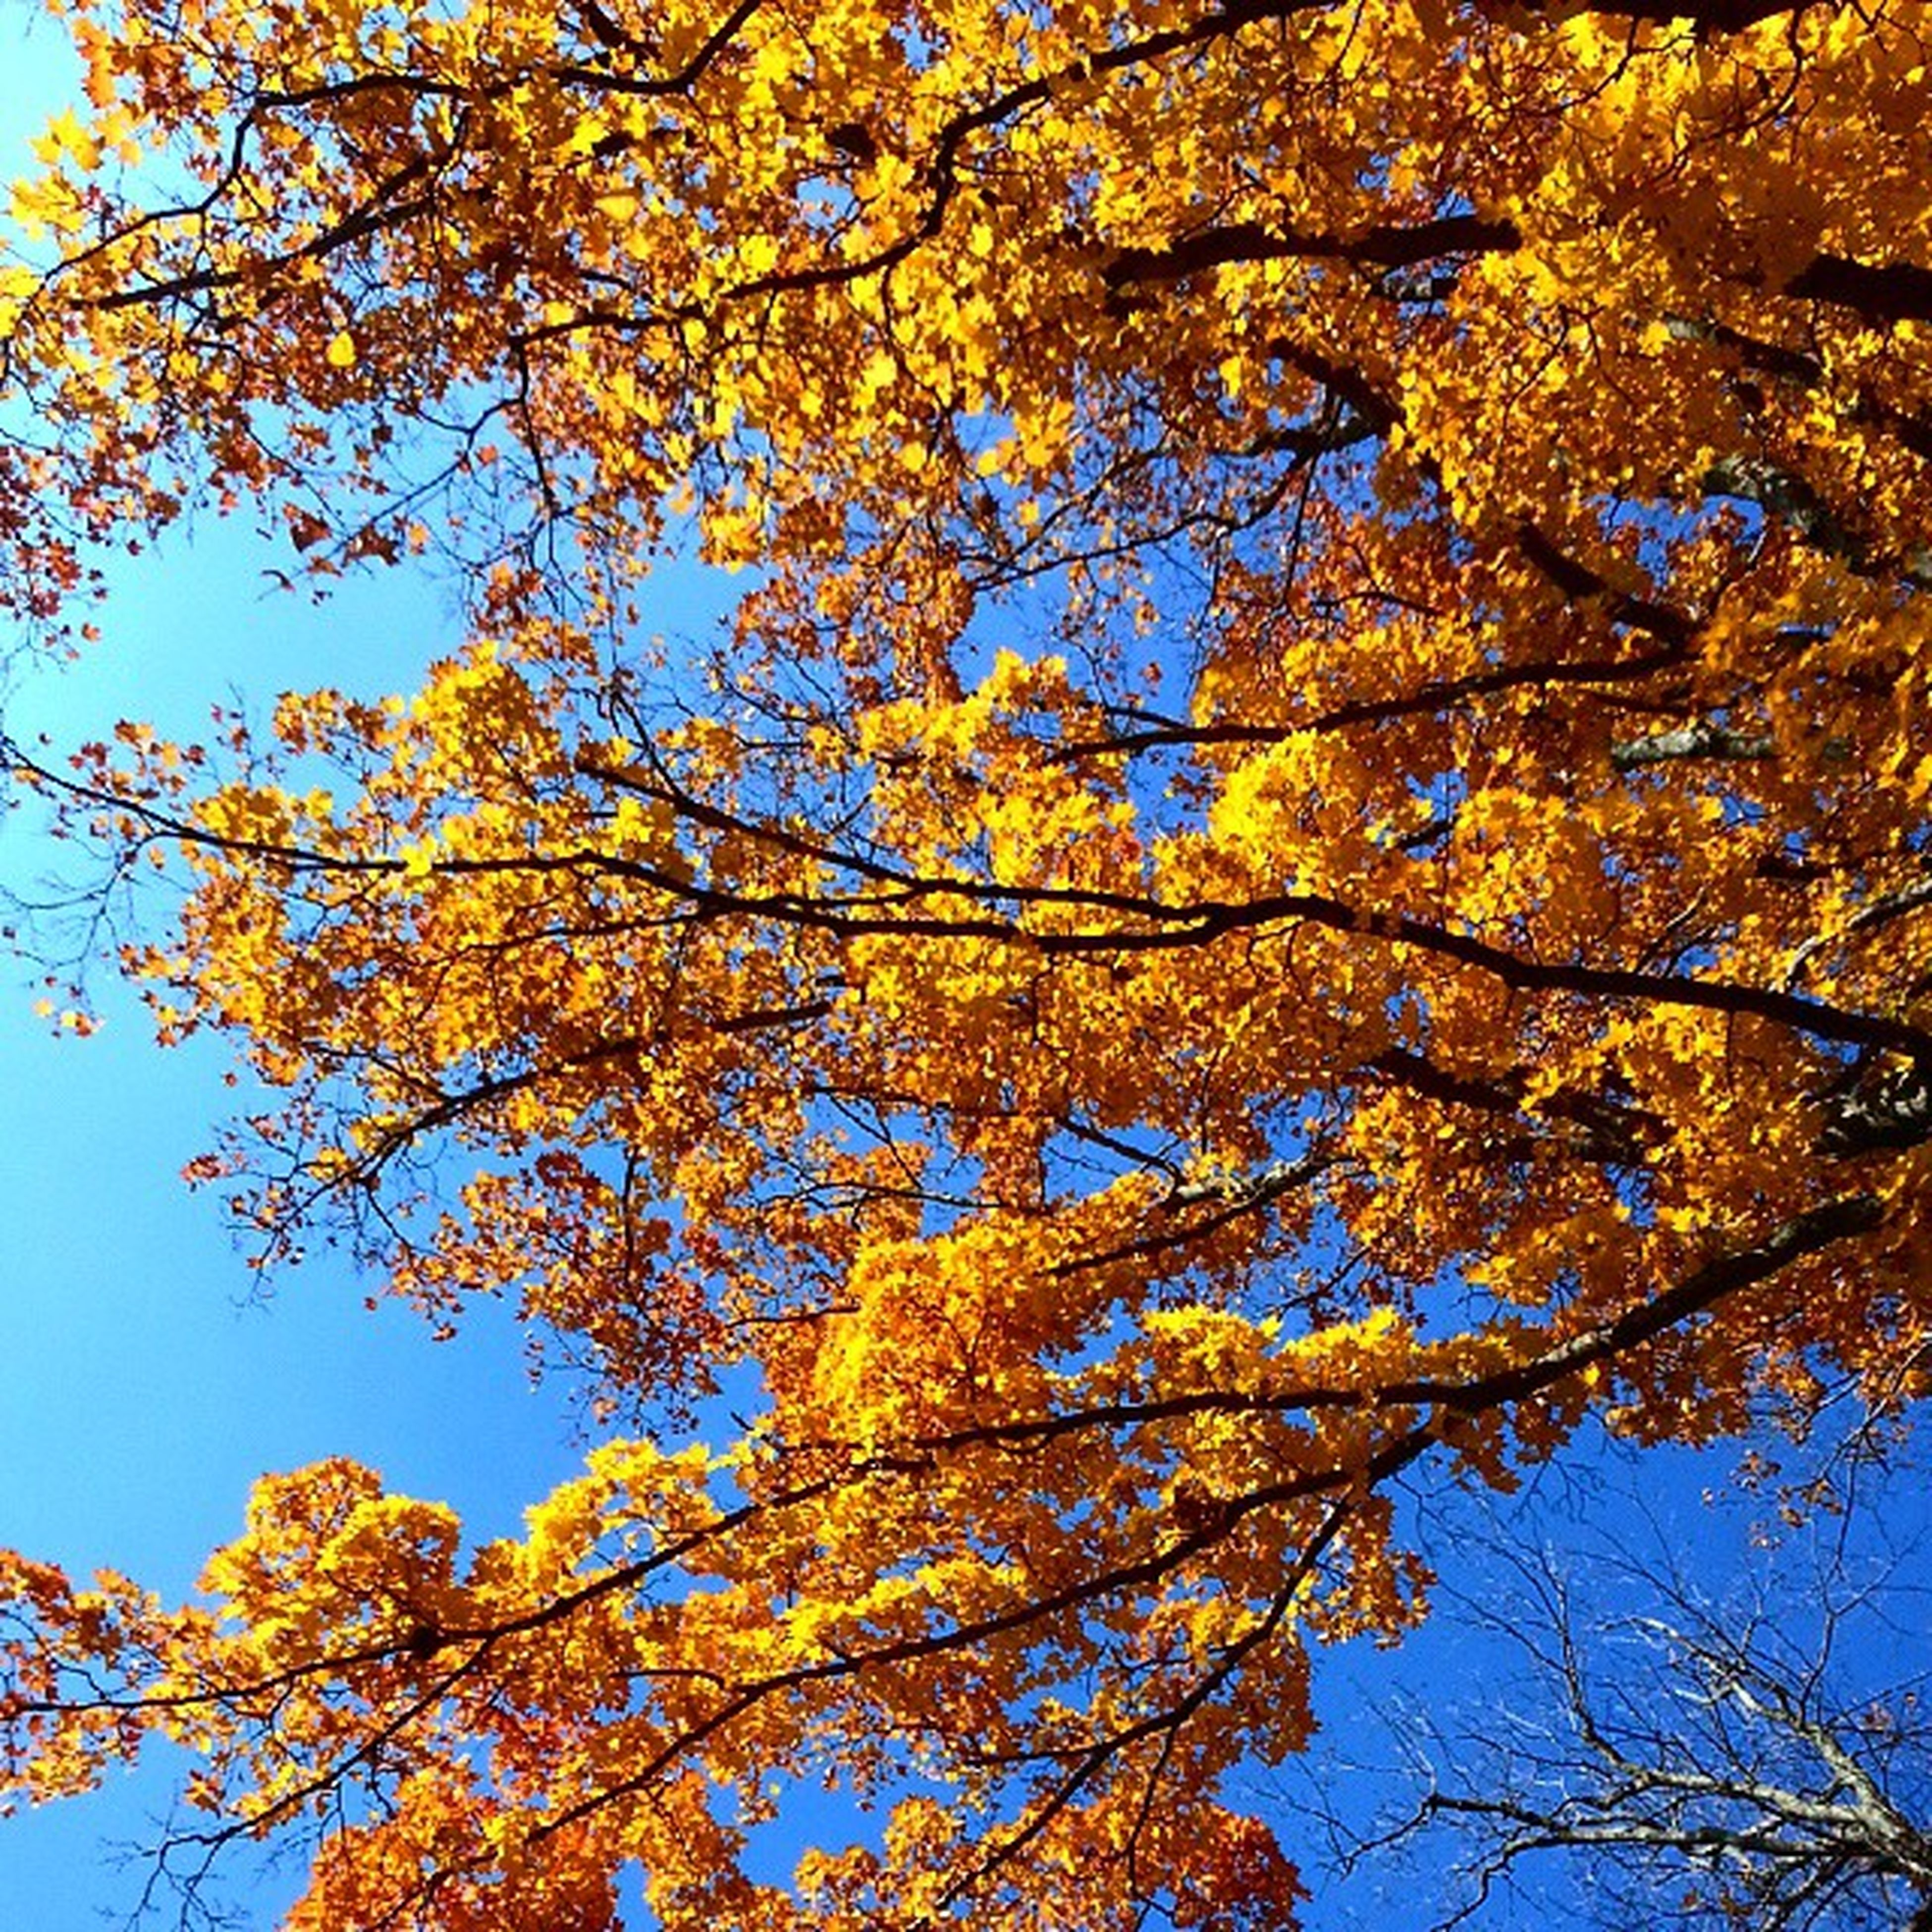 tree, branch, low angle view, autumn, growth, beauty in nature, nature, change, yellow, season, sky, leaf, clear sky, tranquility, flower, day, outdoors, no people, freshness, blossom